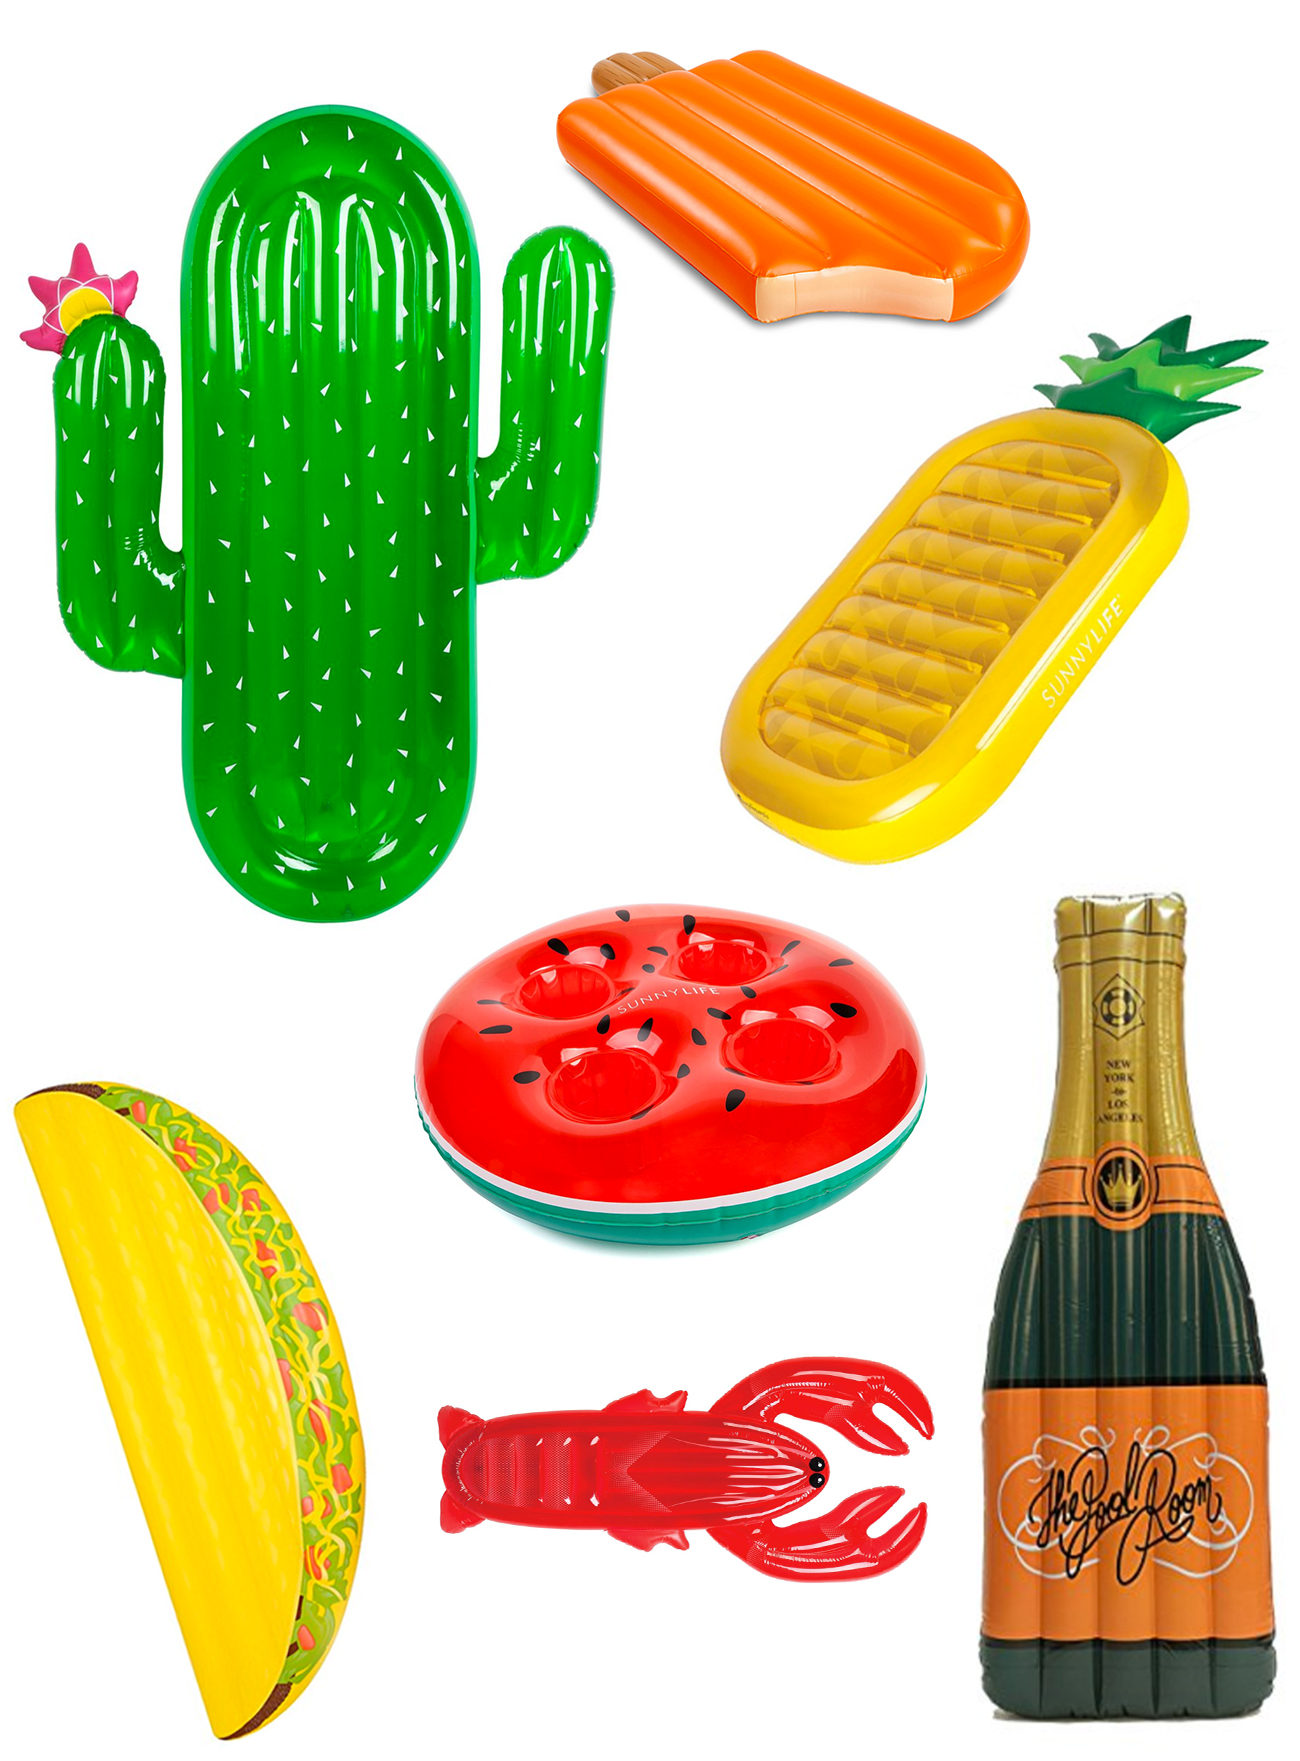 Luxe Lie On Float Cactus // Giant Orange Creamsicle Pool Float // Pineapple Pool  Float // Inflatable Watermelon Drink Holder // Inflatable Lobster Pool ...